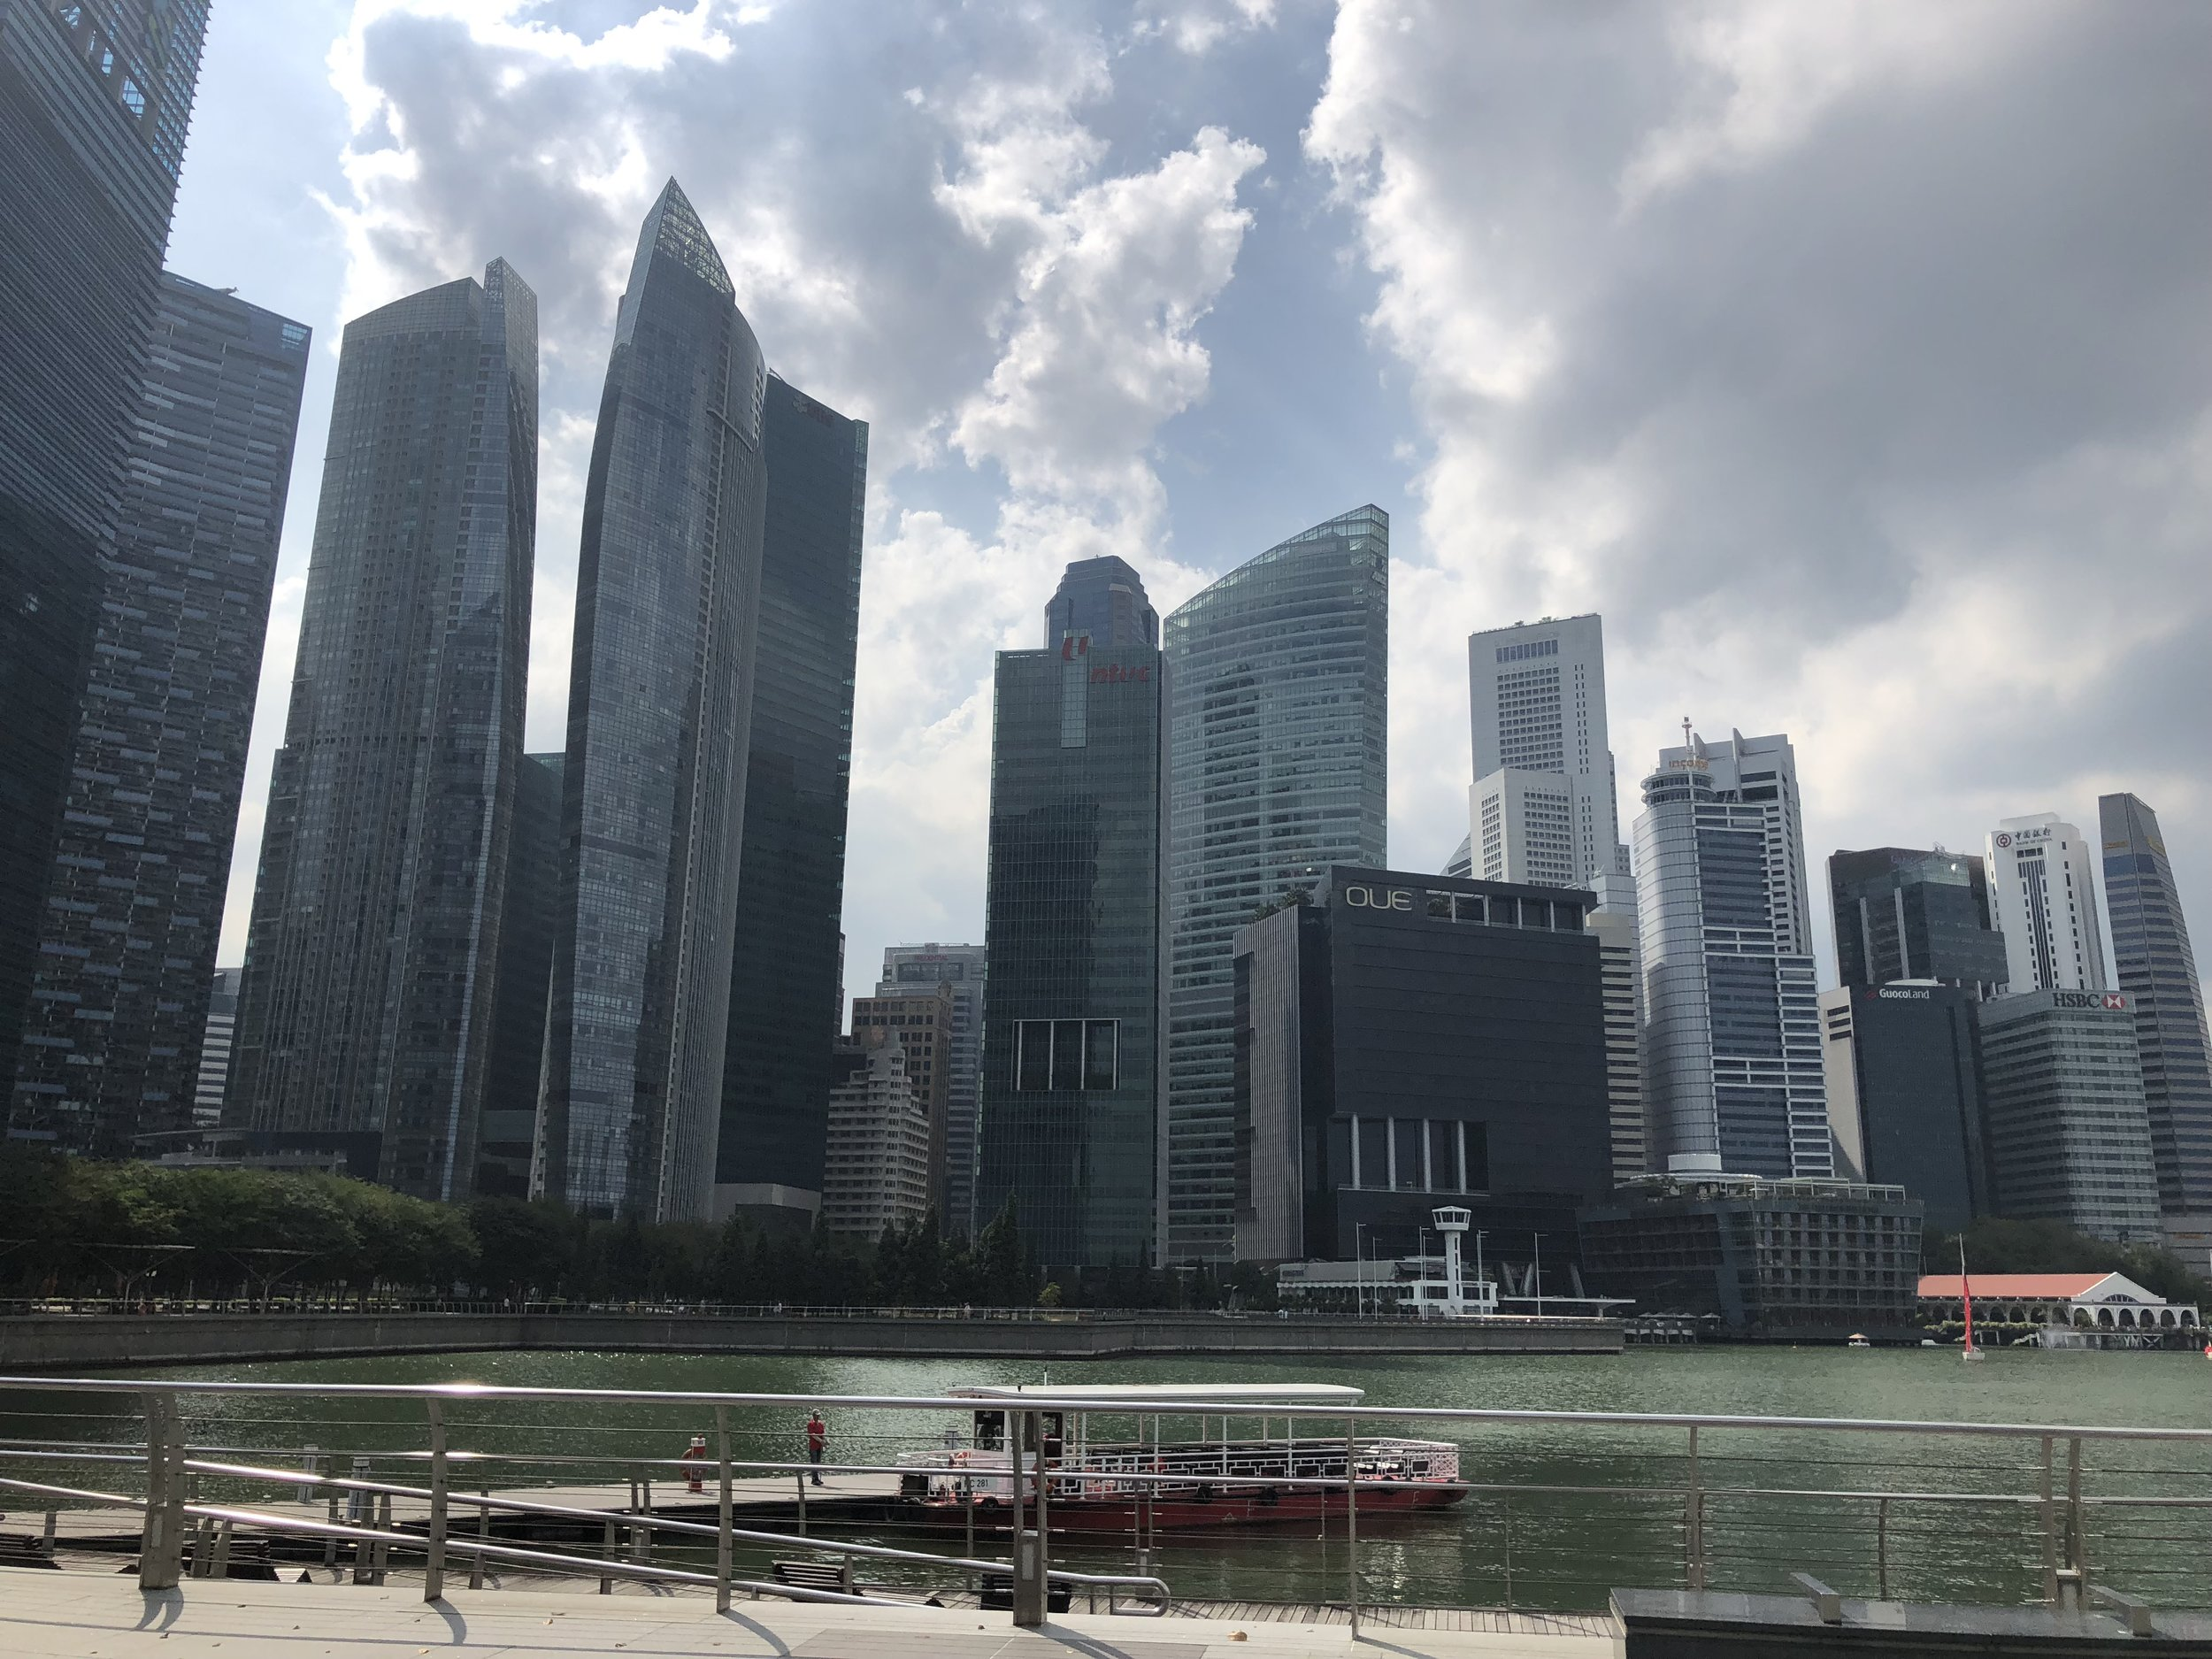 A picture of my walk thus far to Gardens by the Way…so many skyscrapers!